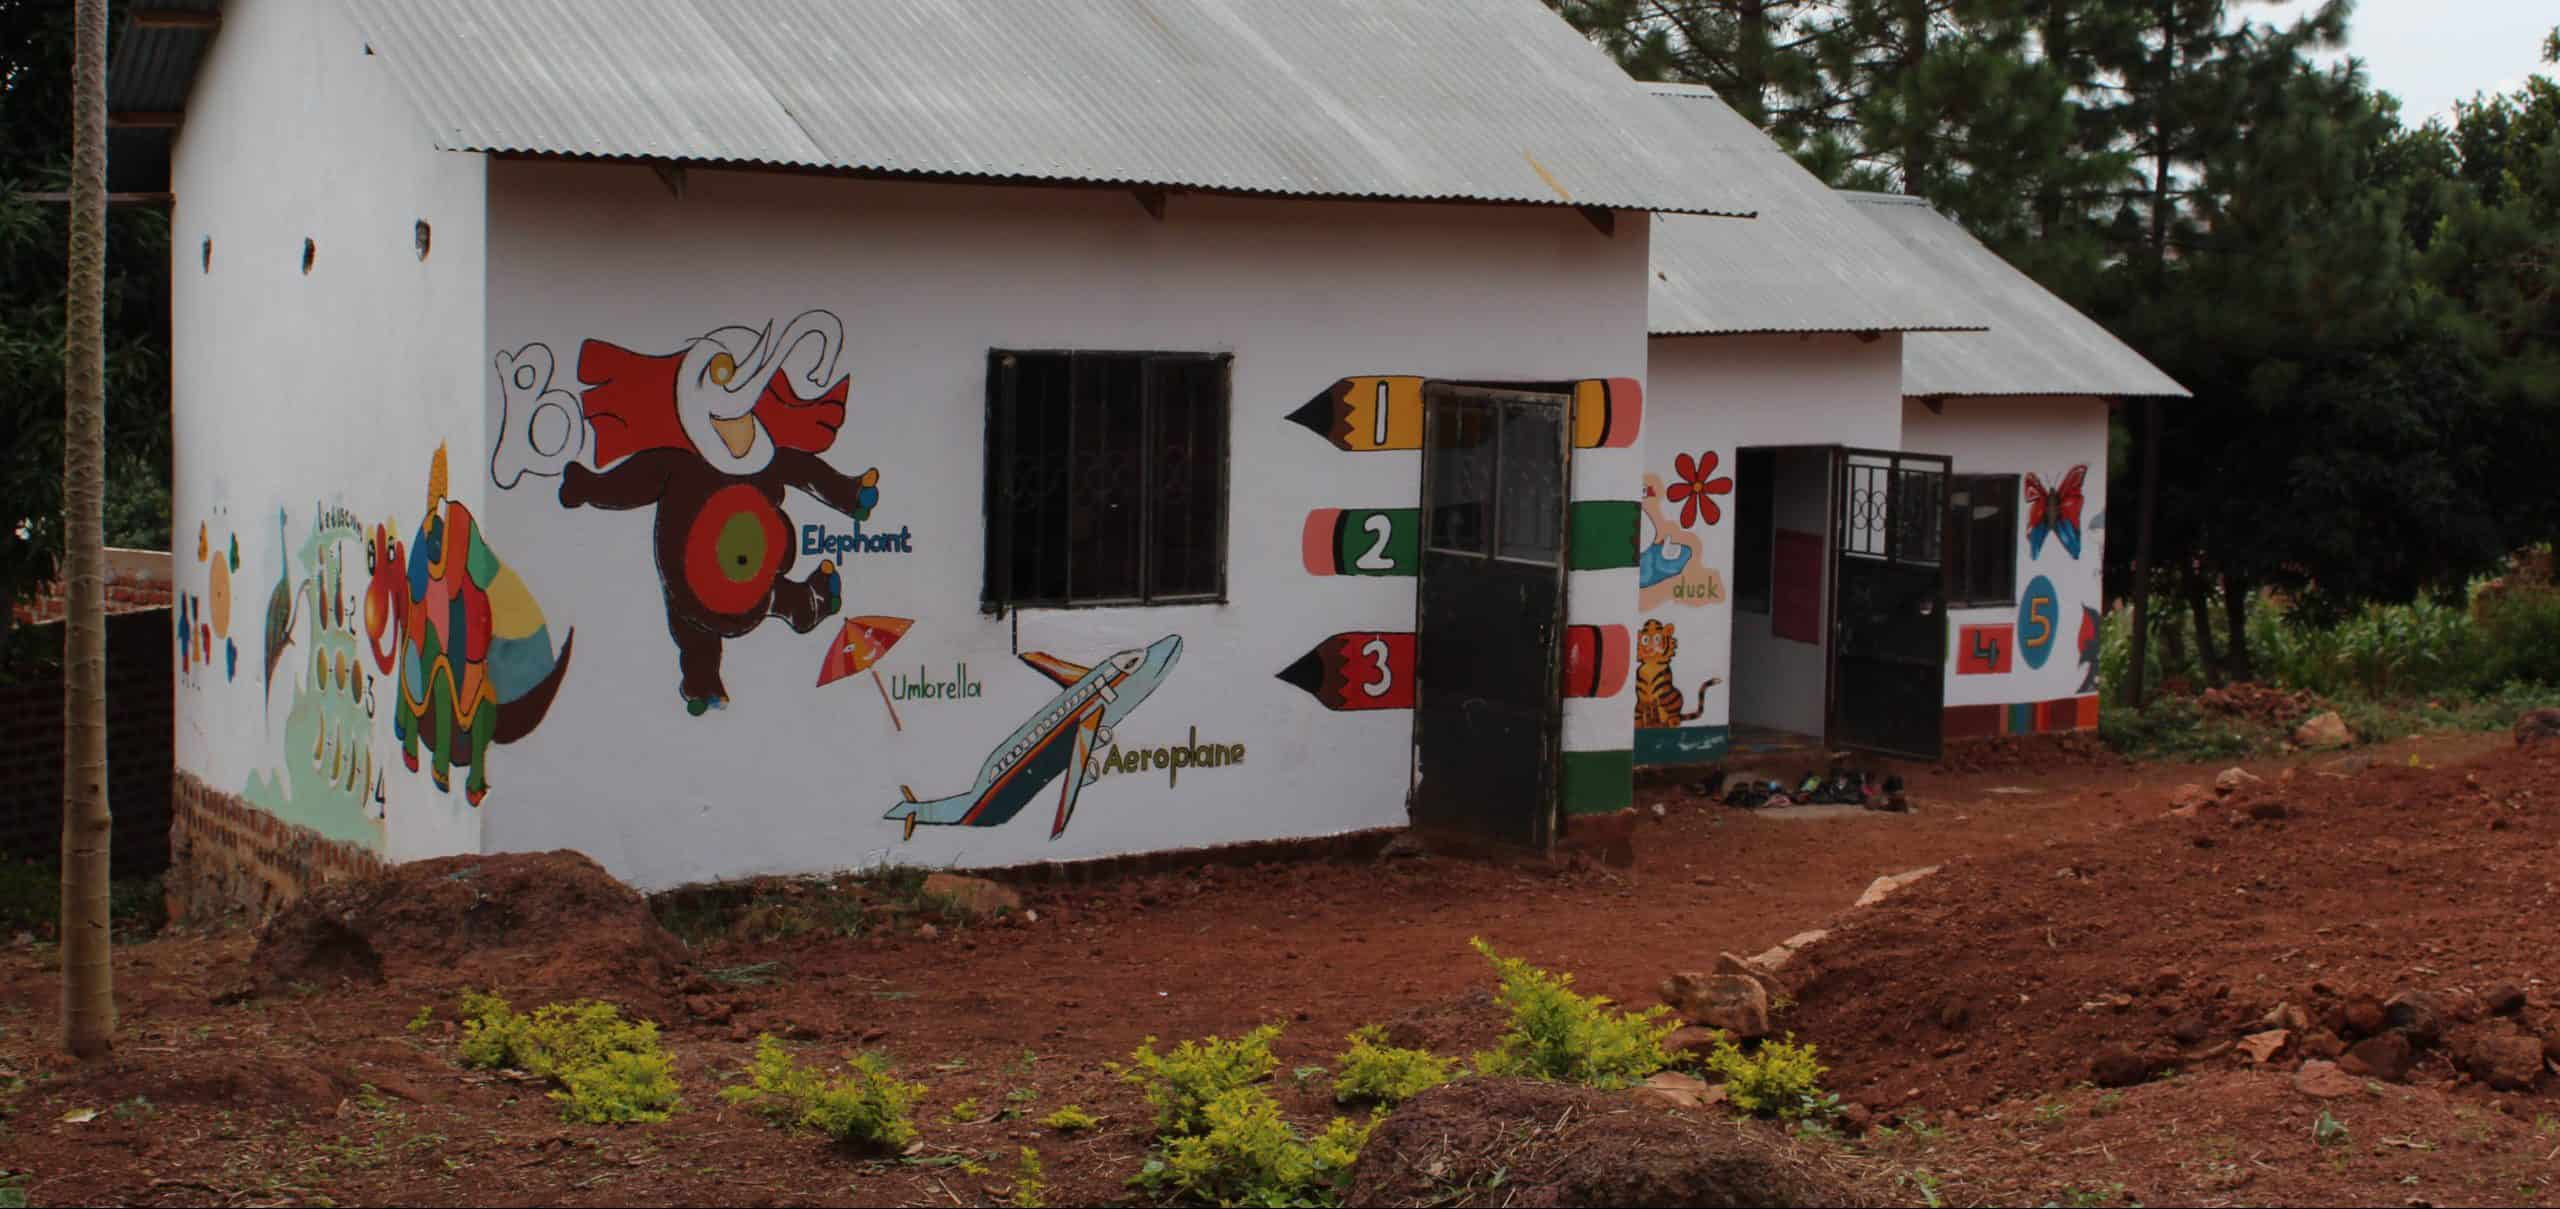 Nazareth Child Care Center